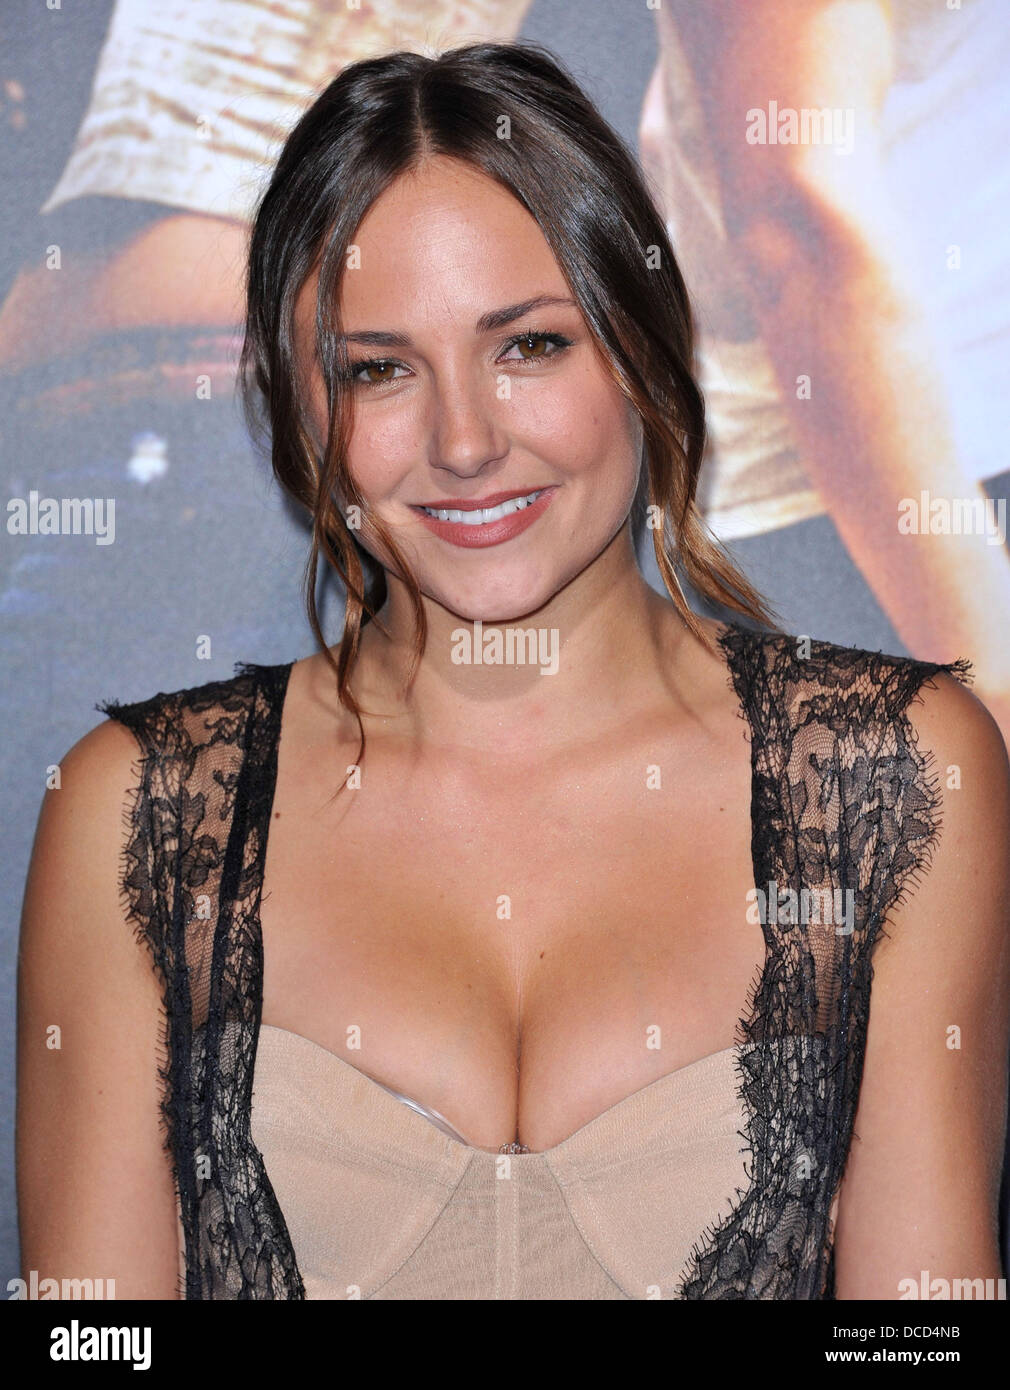 Photo Briana Evigan nudes (96 photo), Tits, Cleavage, Instagram, legs 2020